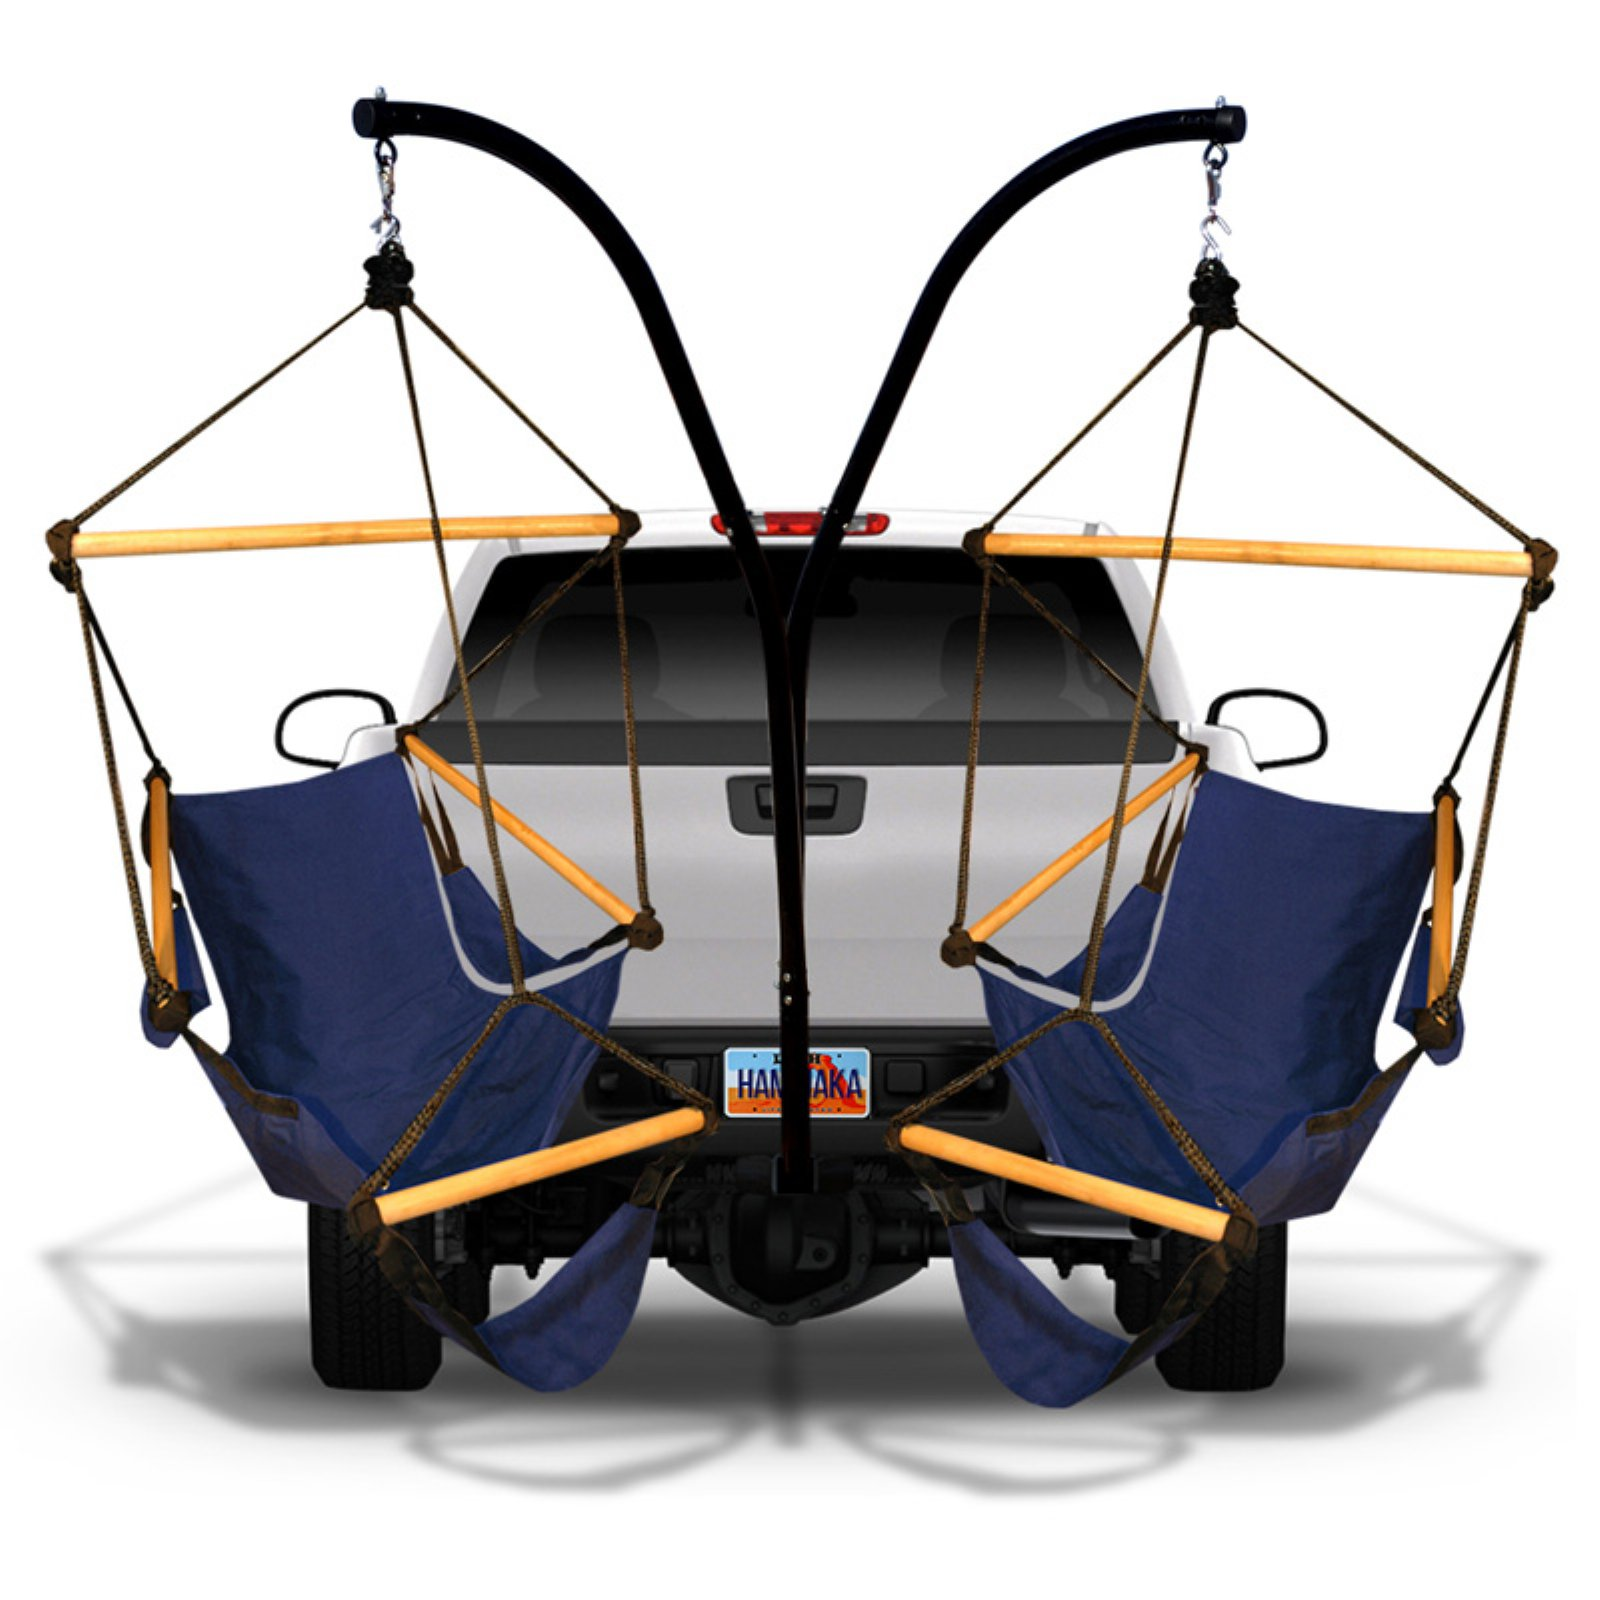 Hammaka Cradle Hammock Chairs and Parachute Hammock with Hitch Stand